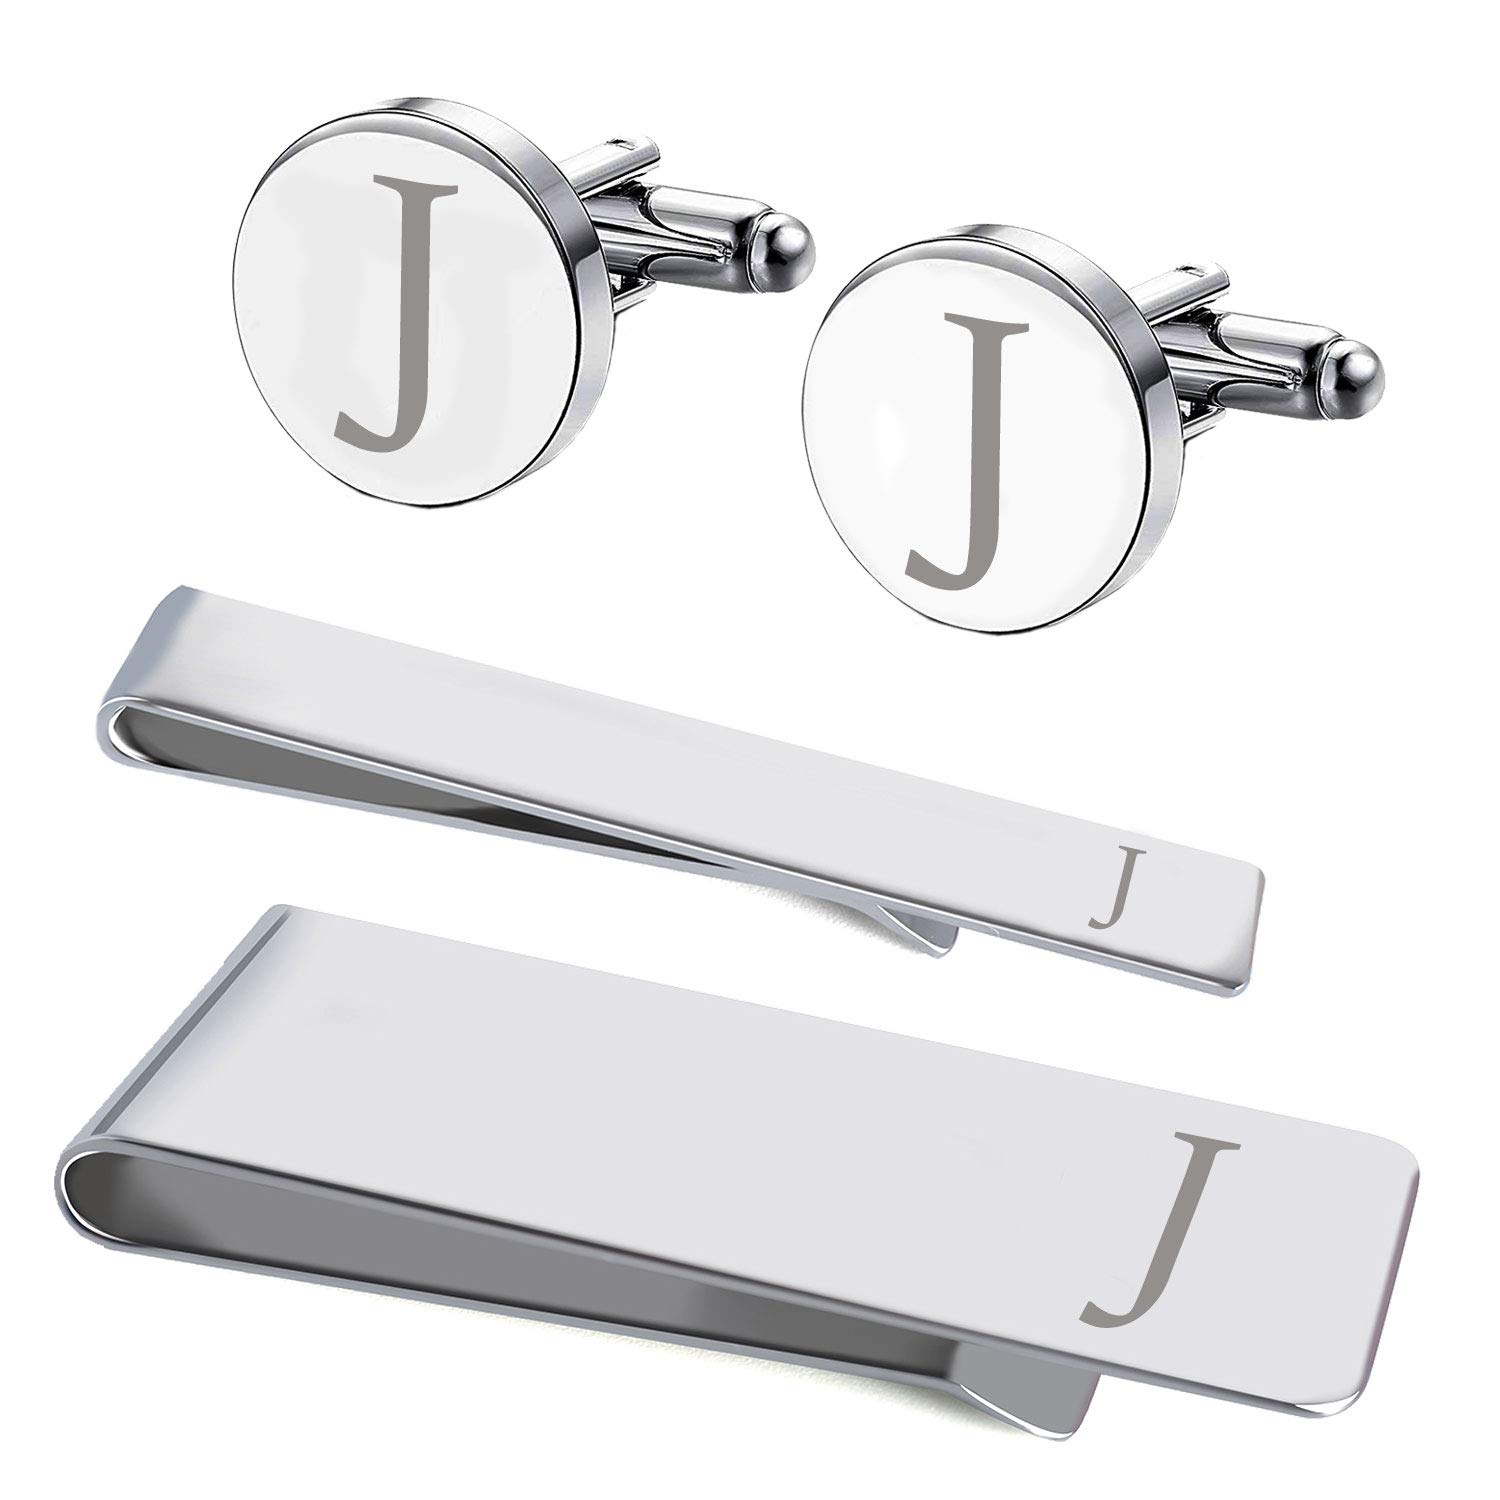 BodyJ4You 4PC Cufflinks Tie Bar Money Clip Button Shirt Personalized Initials Letter J Gift Set